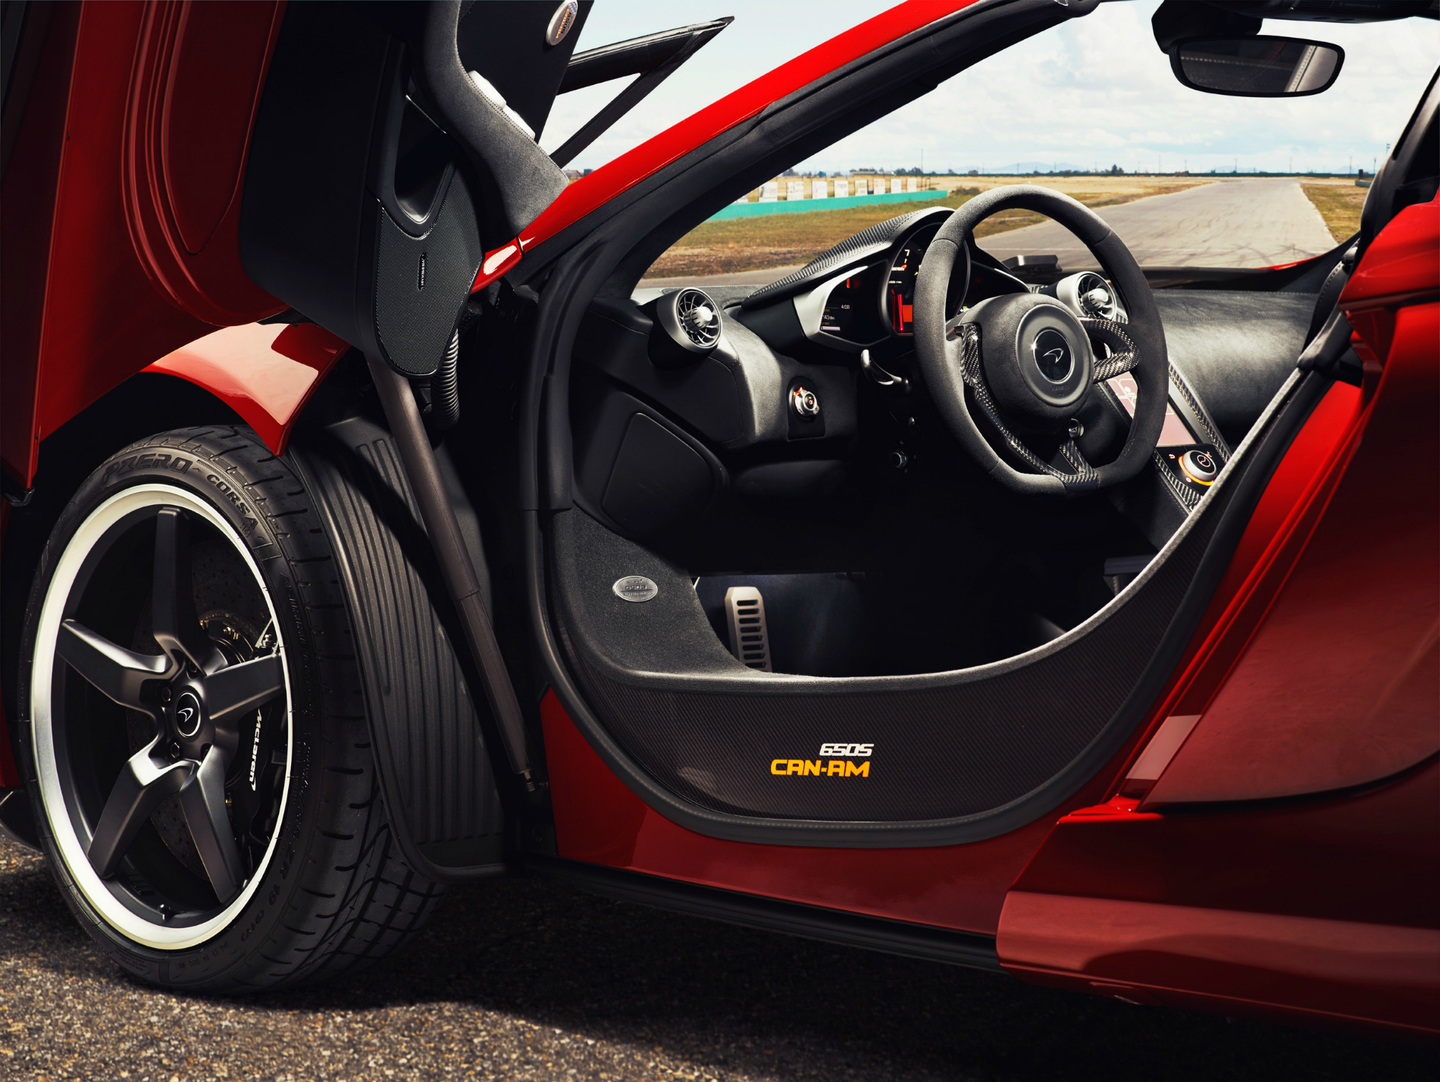 Mclaren Commemorates Can Am Racing With Limited Edition 650s Spider